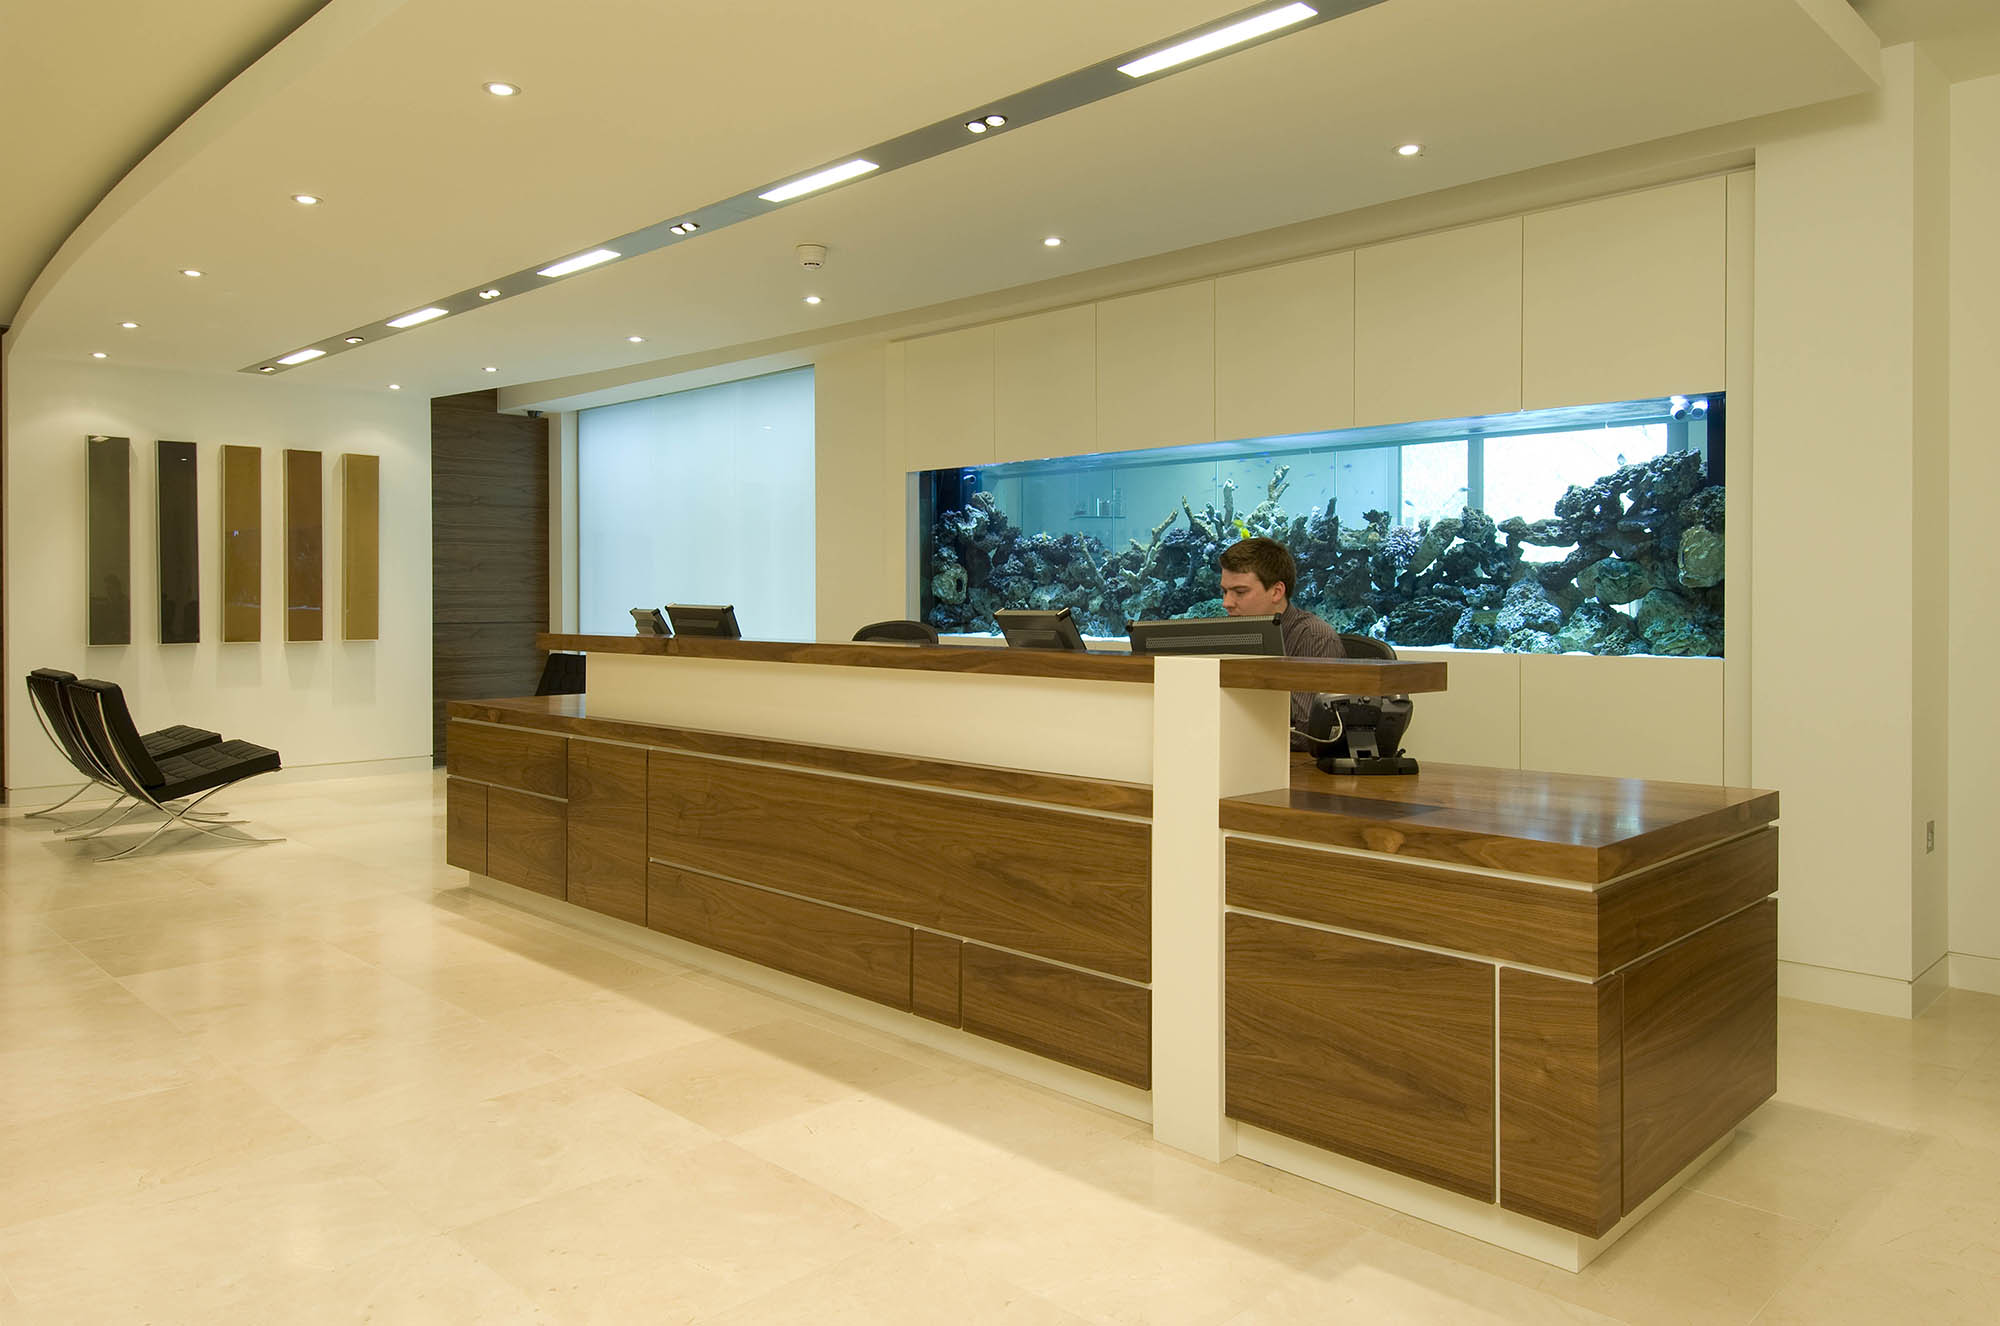 Fish tank for the office - Private Equity Firm In London